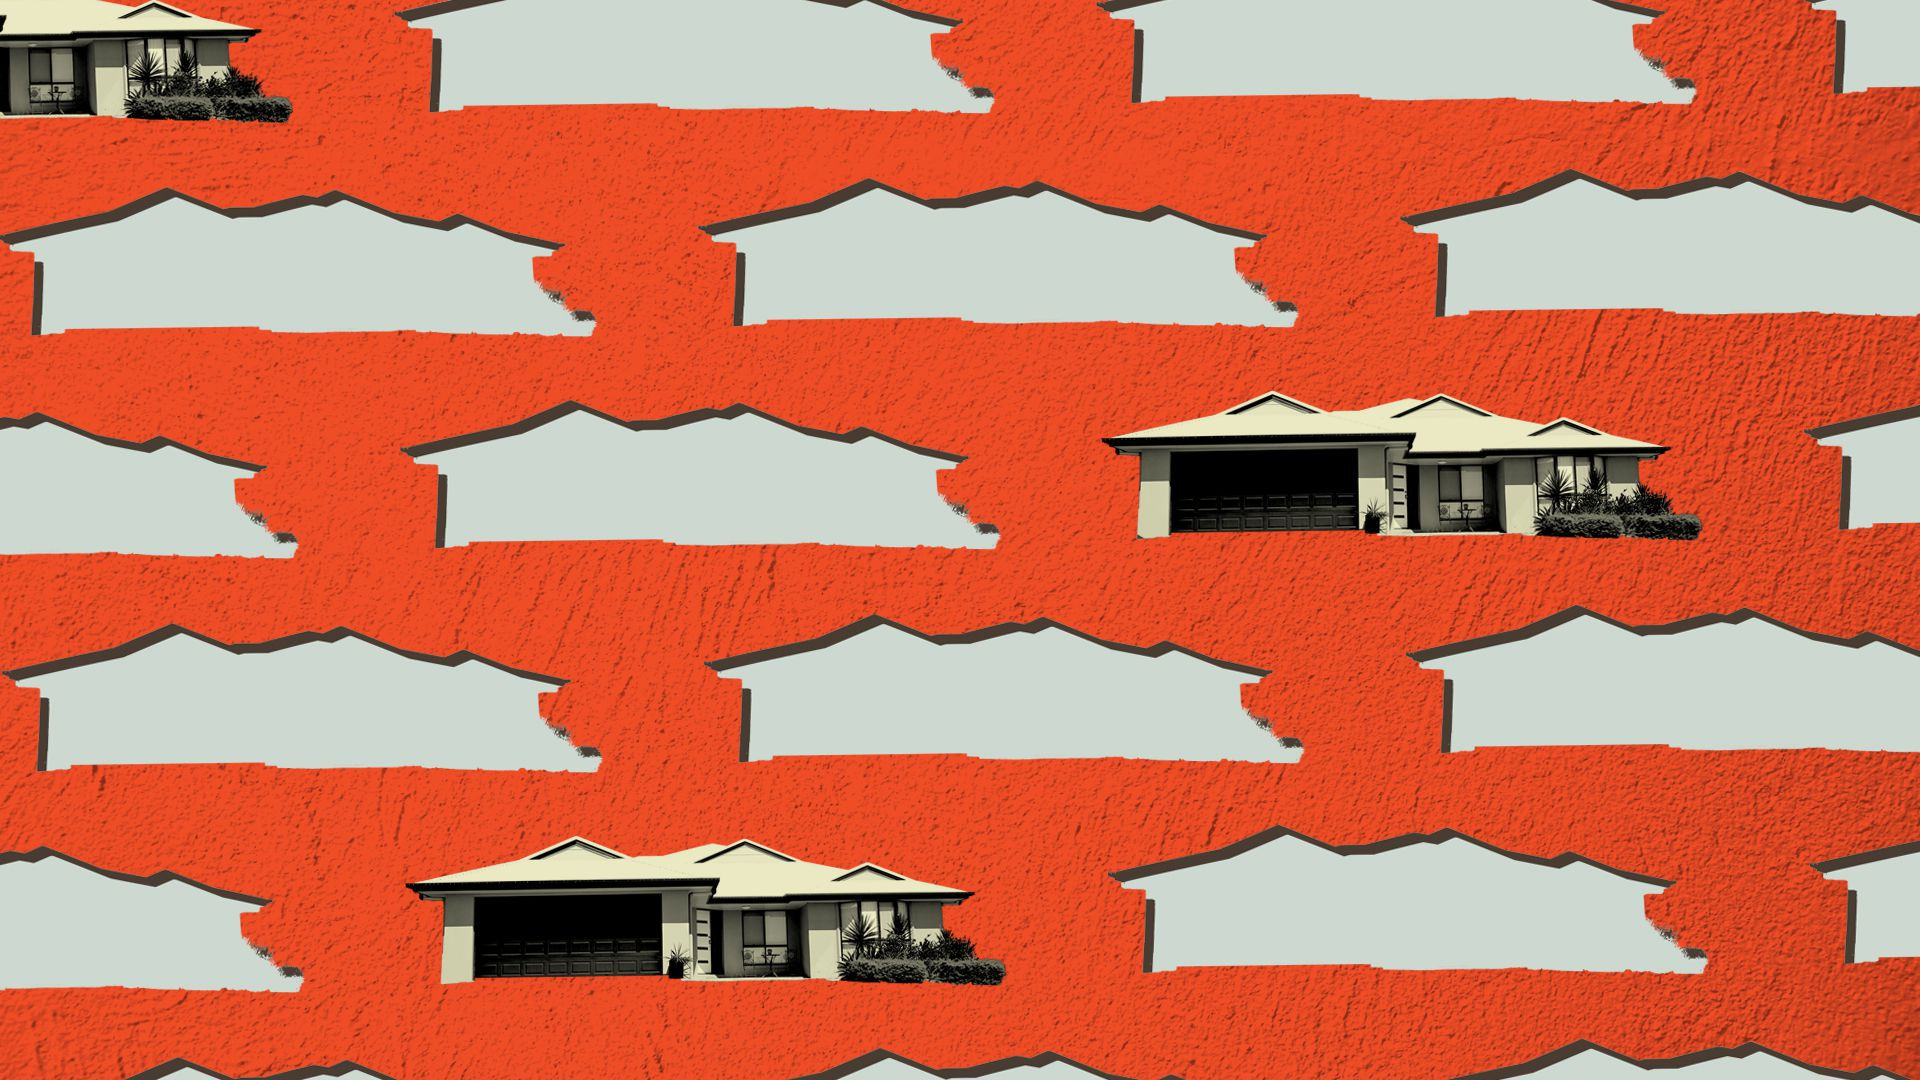 Illustration of a pattern of houses, most of them cut out with emptiness behind them.